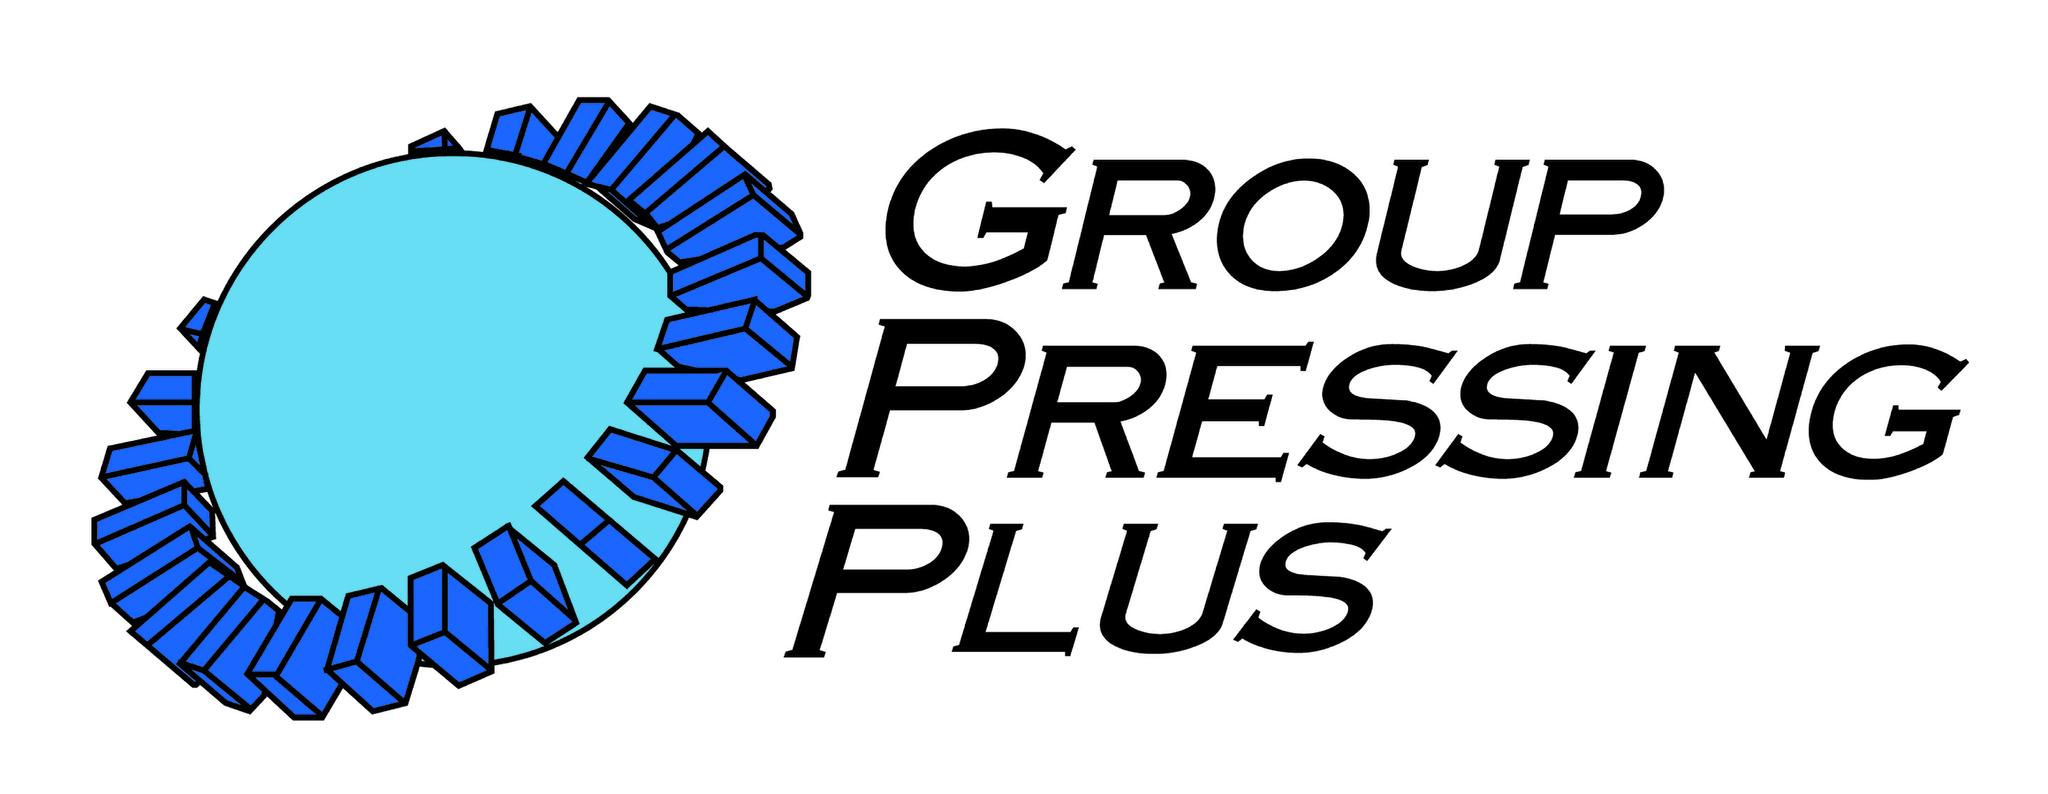 Group Pressing Plus